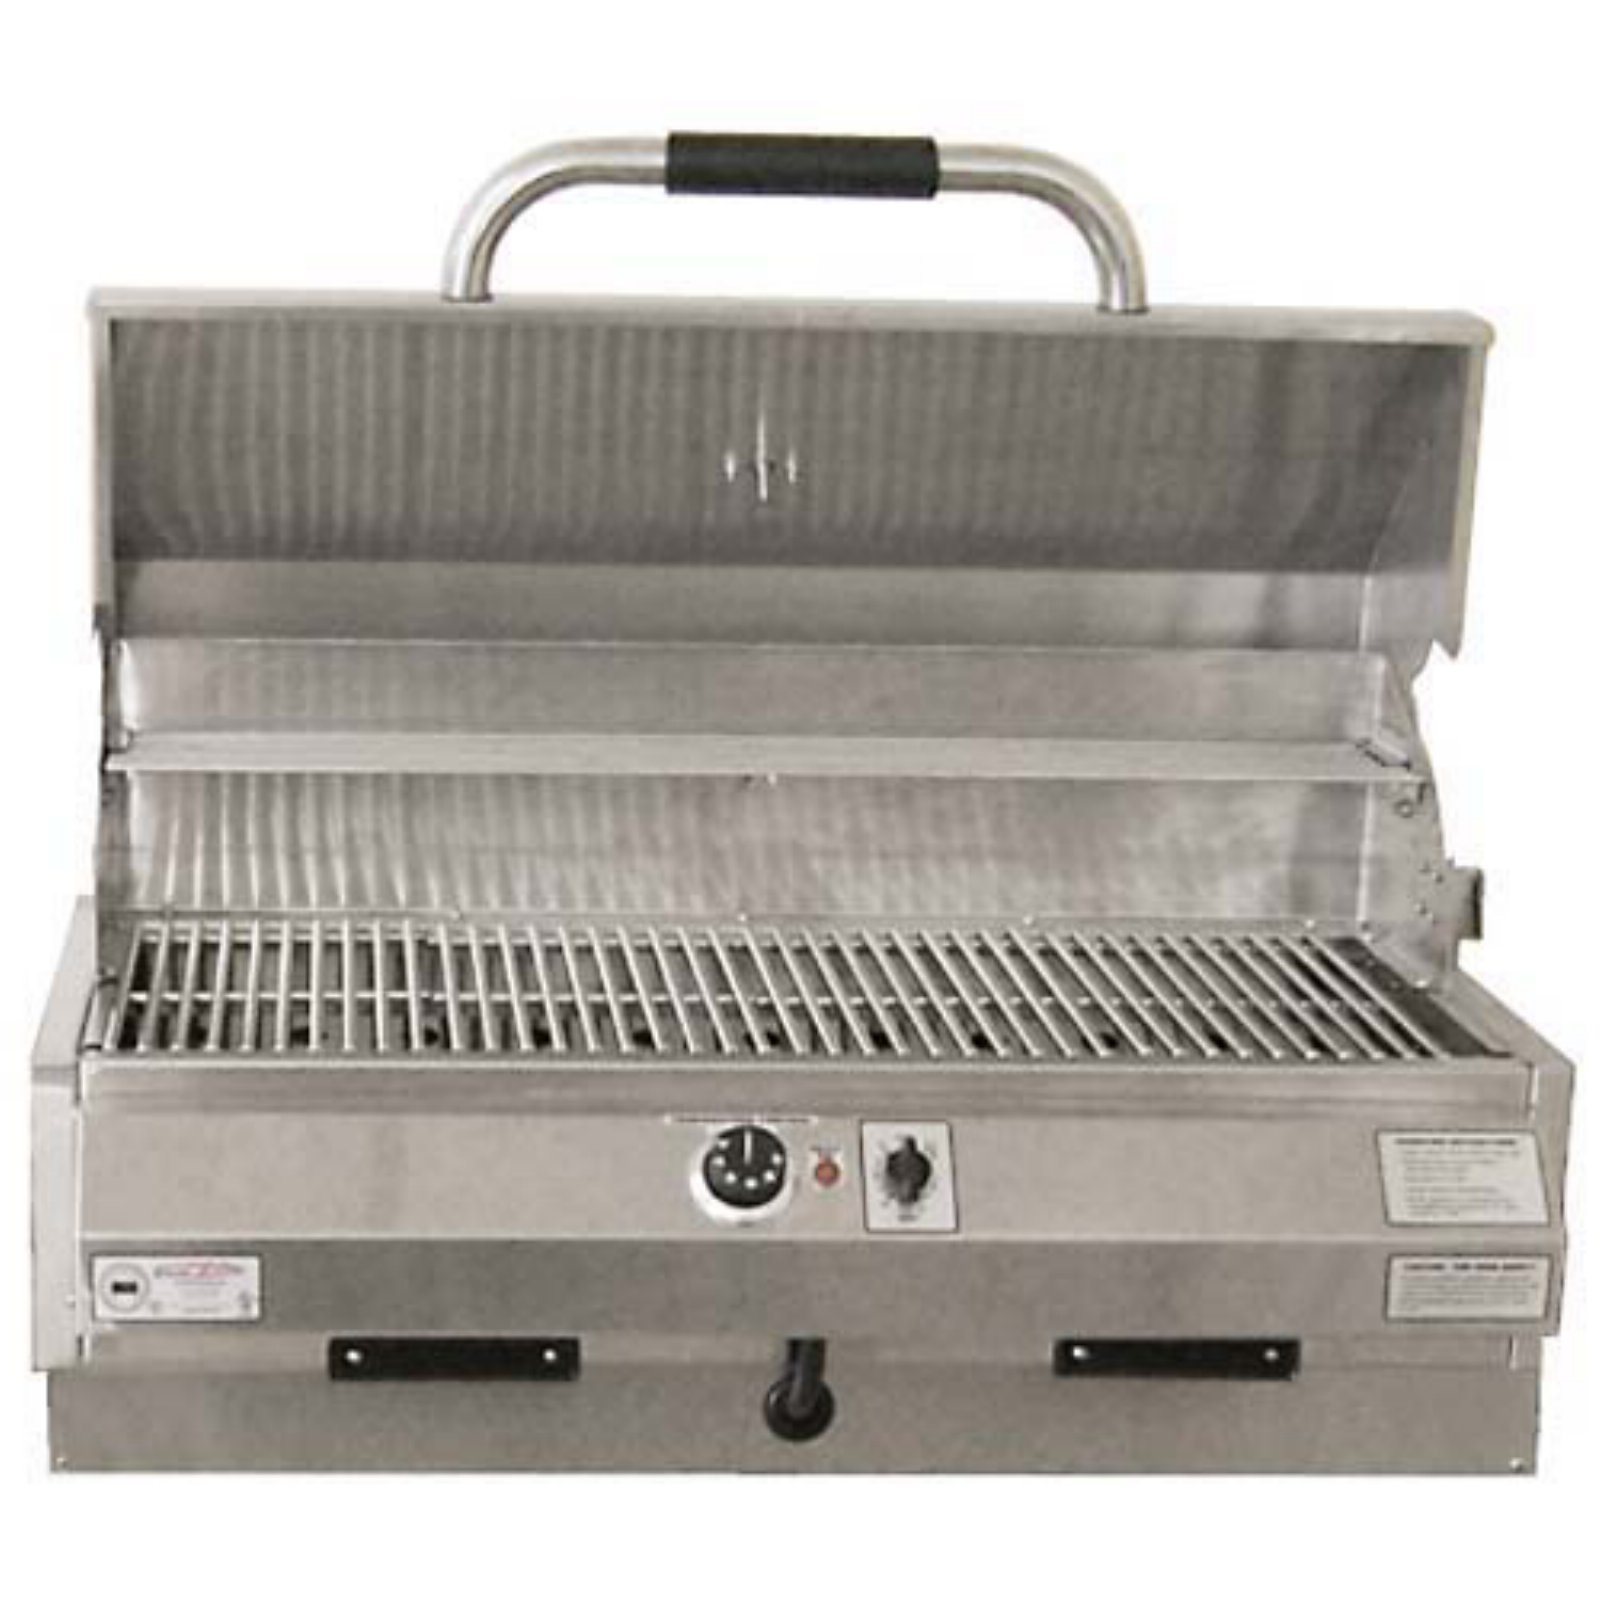 Electri-Chef Island Marine 32 in. Built-In Electric Grill Single Burner by Electri - Chef Grill